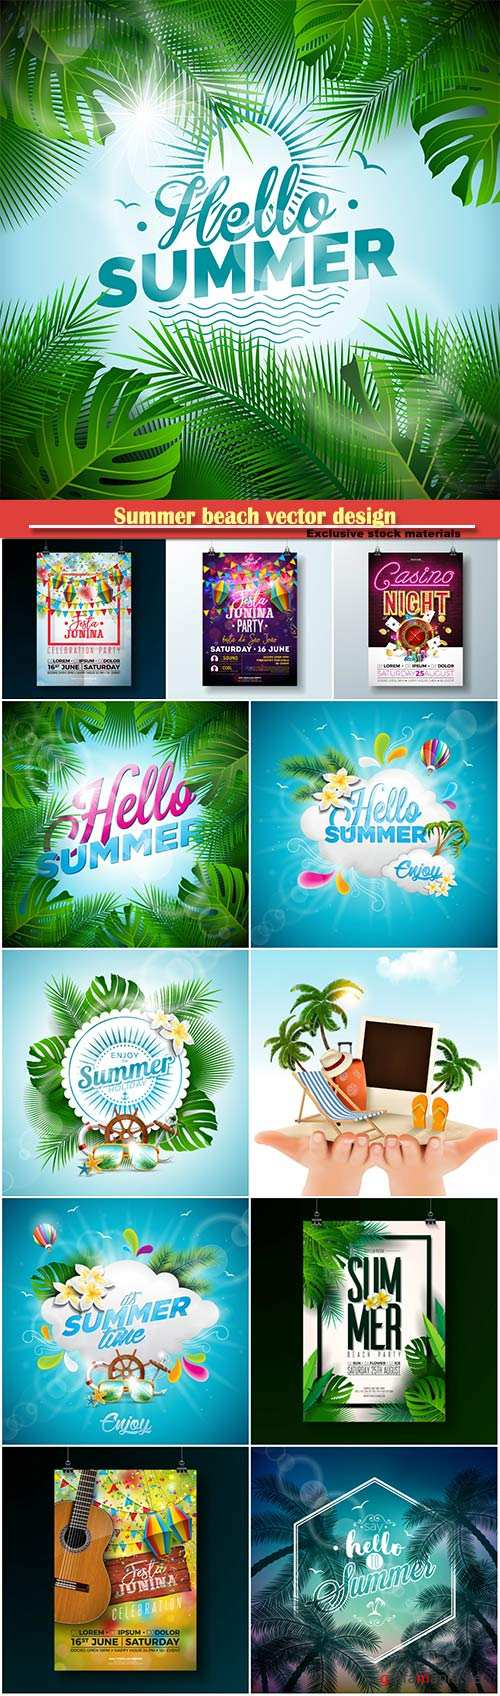 Summer beach vector design background